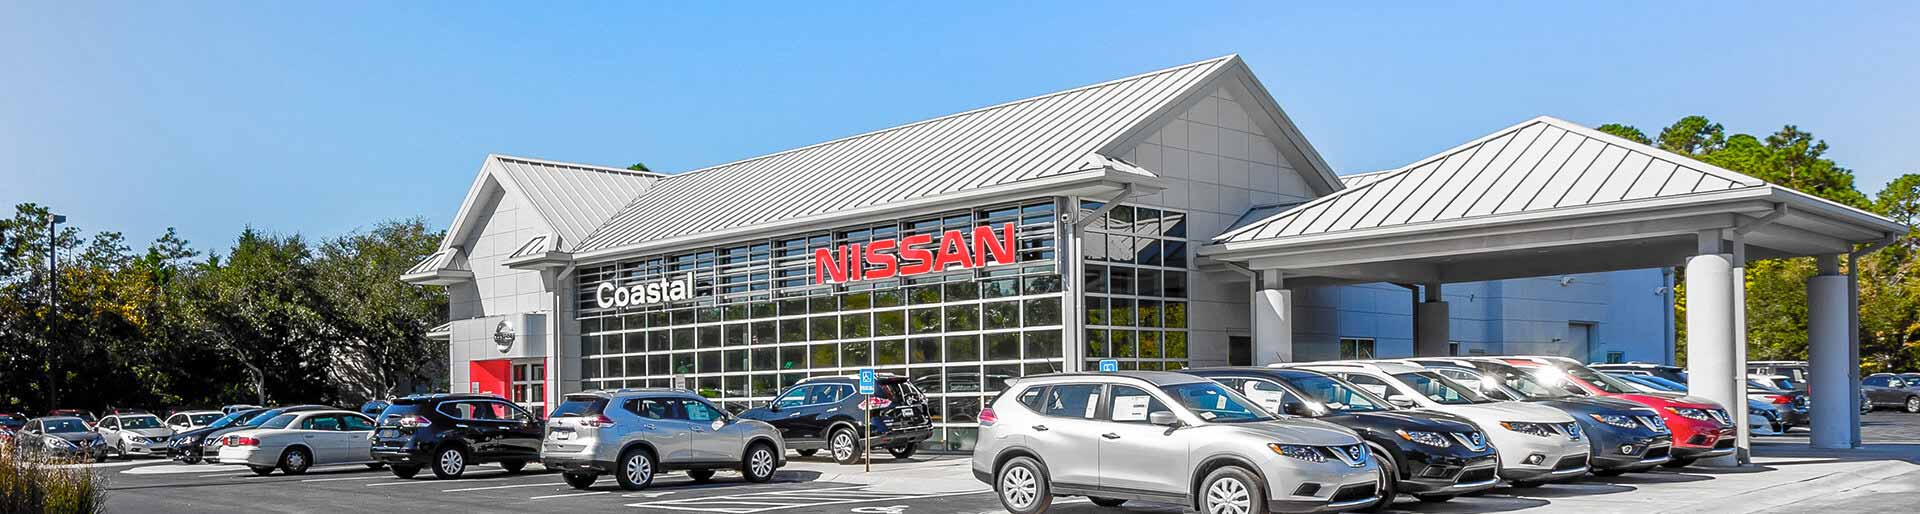 Pawleys Island, SC Nissan Dealer | New and Used Cars | Auto ...